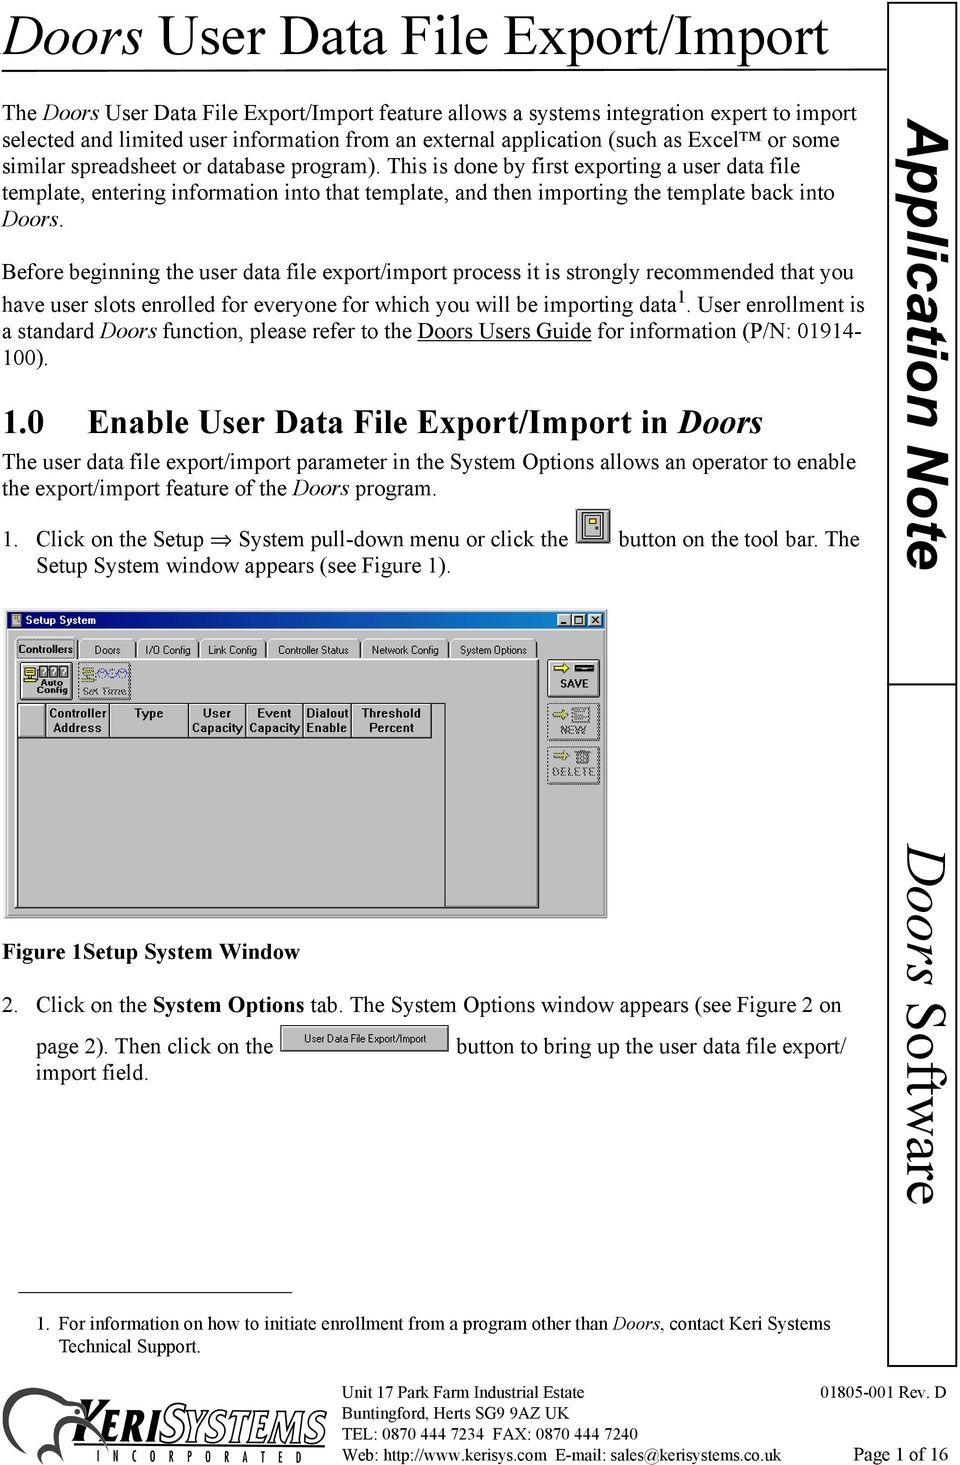 Before beginning the user data file export/import process it is strongly recommended that you have user slots enrolled for everyone for which you will be importing data 1.